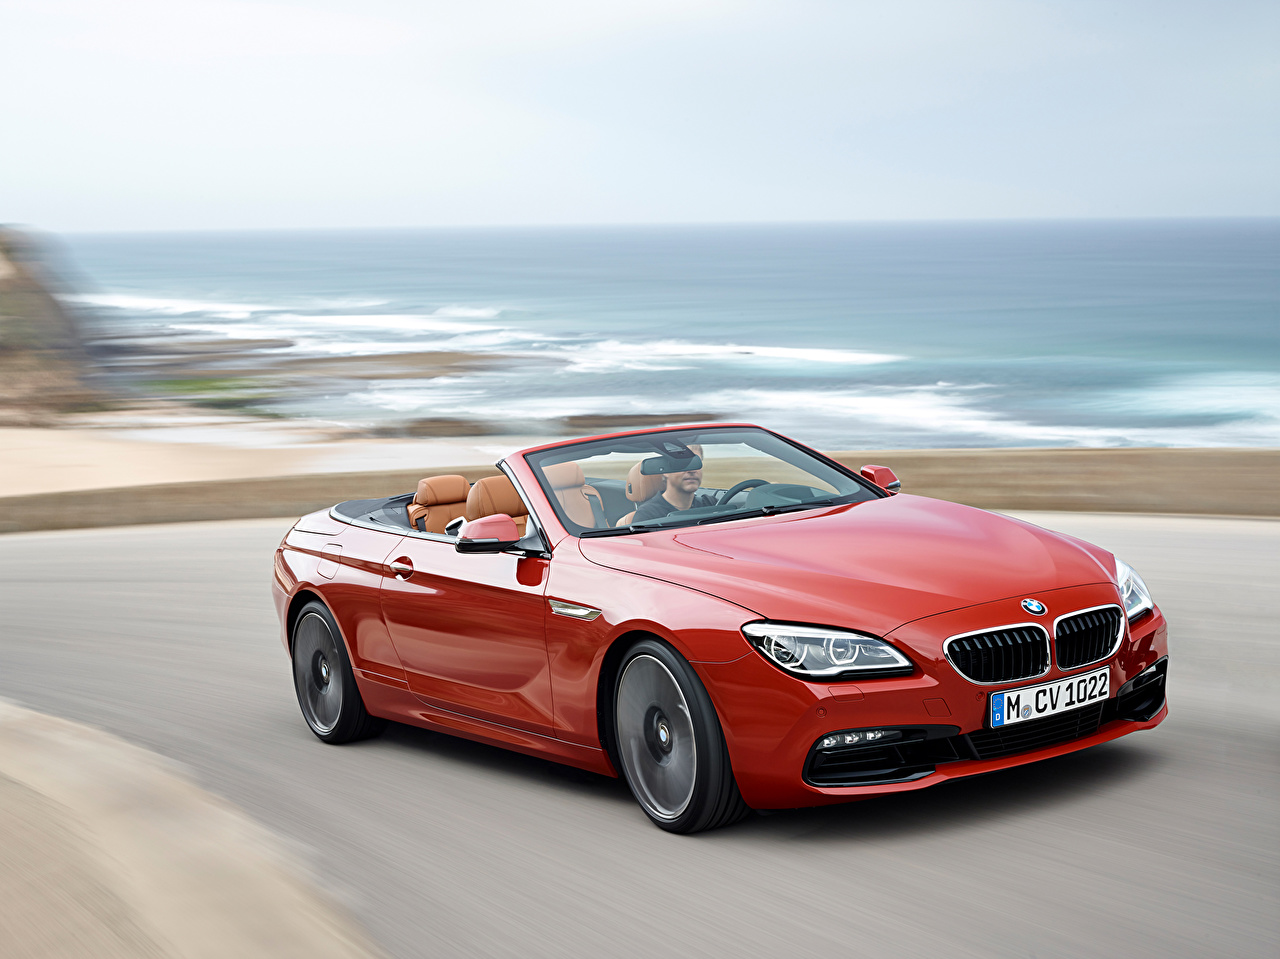 Photo BMW 2015 M6 Cabriolet Red Cars Convertible auto automobile